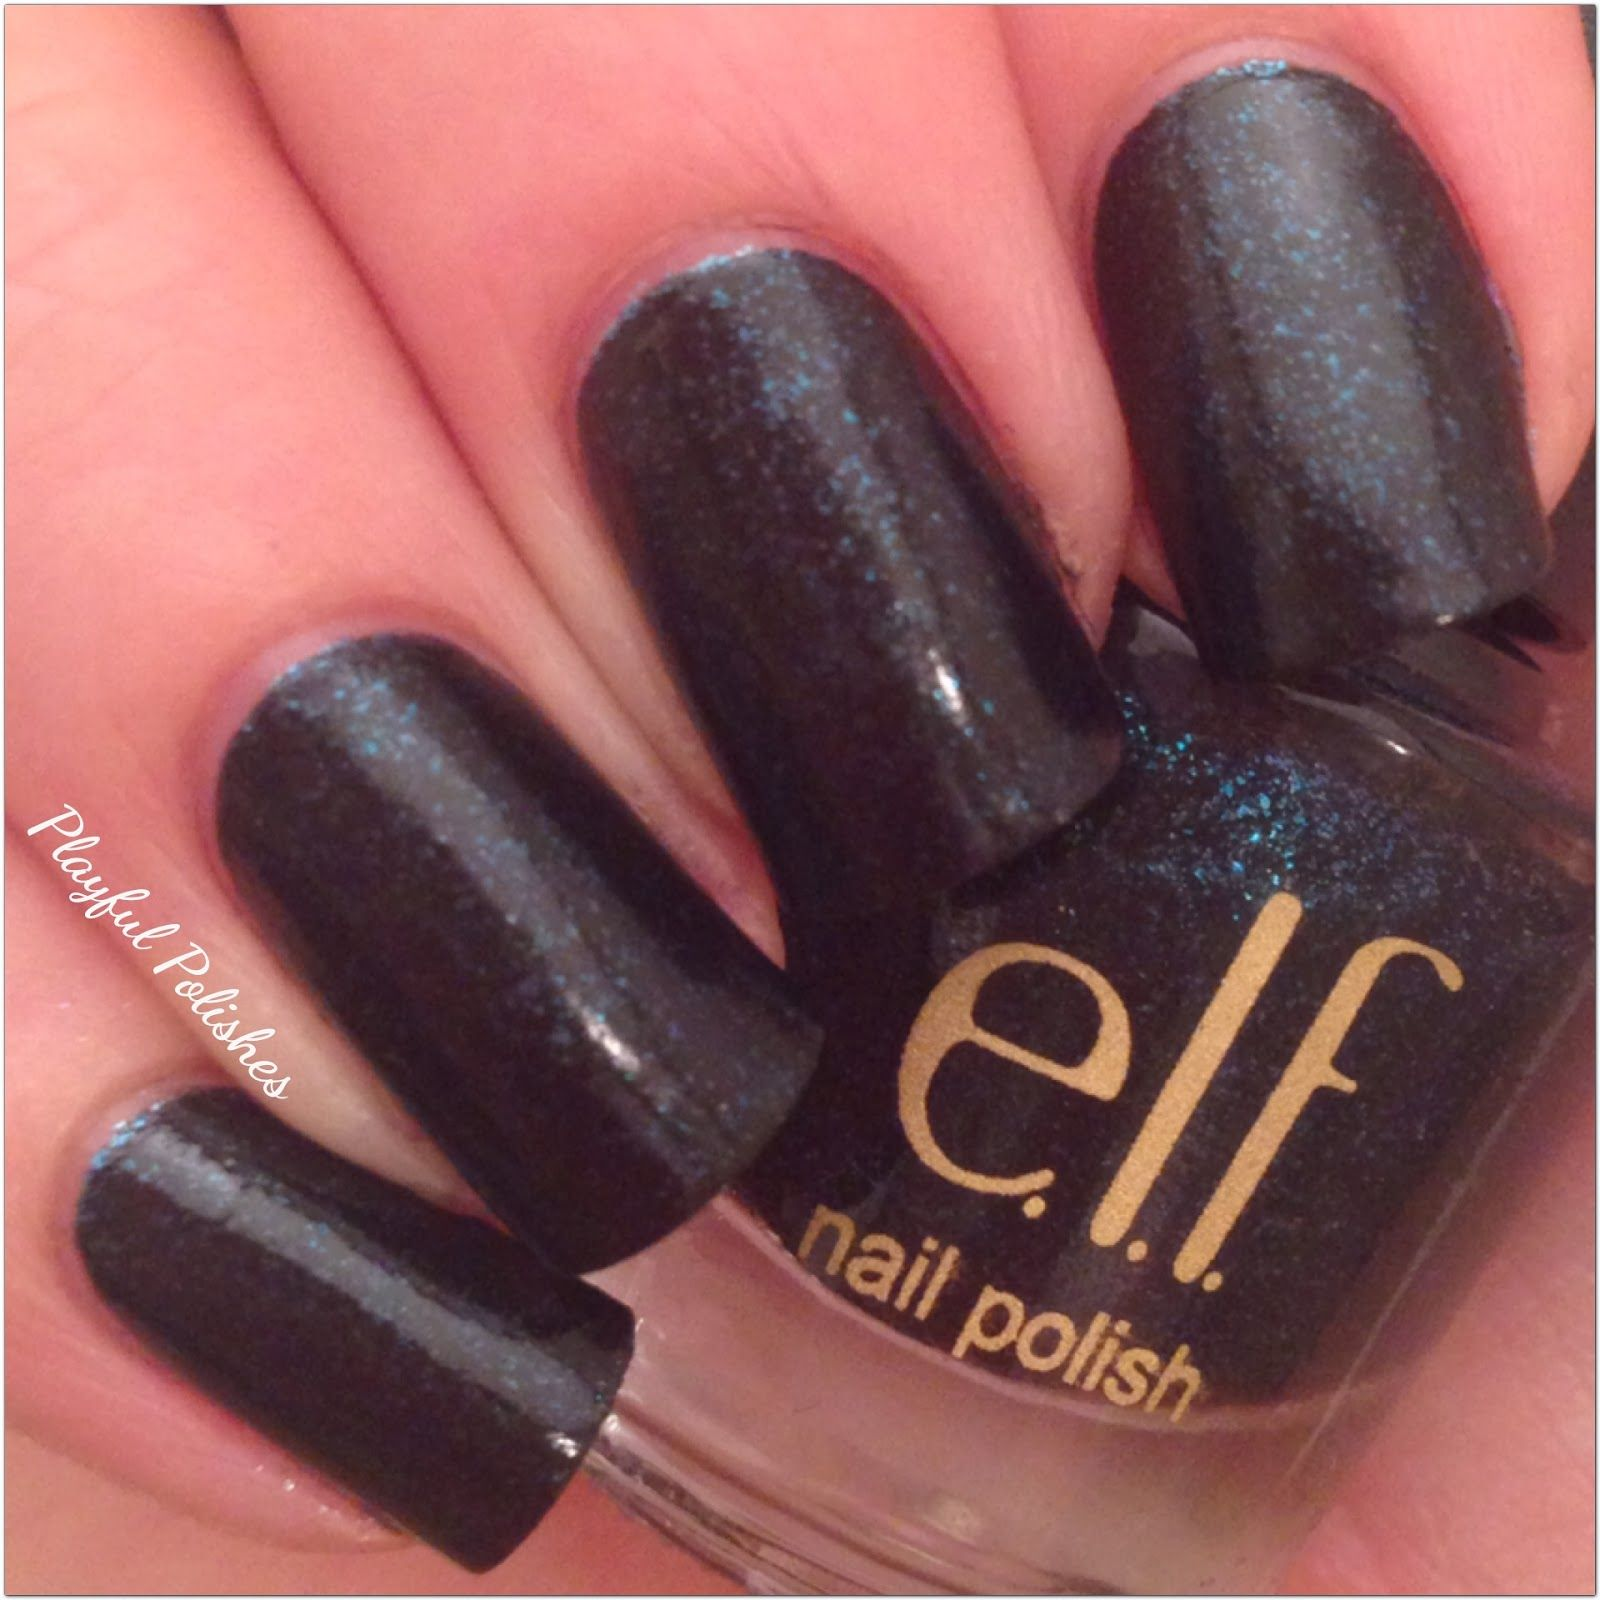 Playful Polishes: SWATCHES - E.L.F., FUNKY FINGERS AND MORE/e.l.f. ...